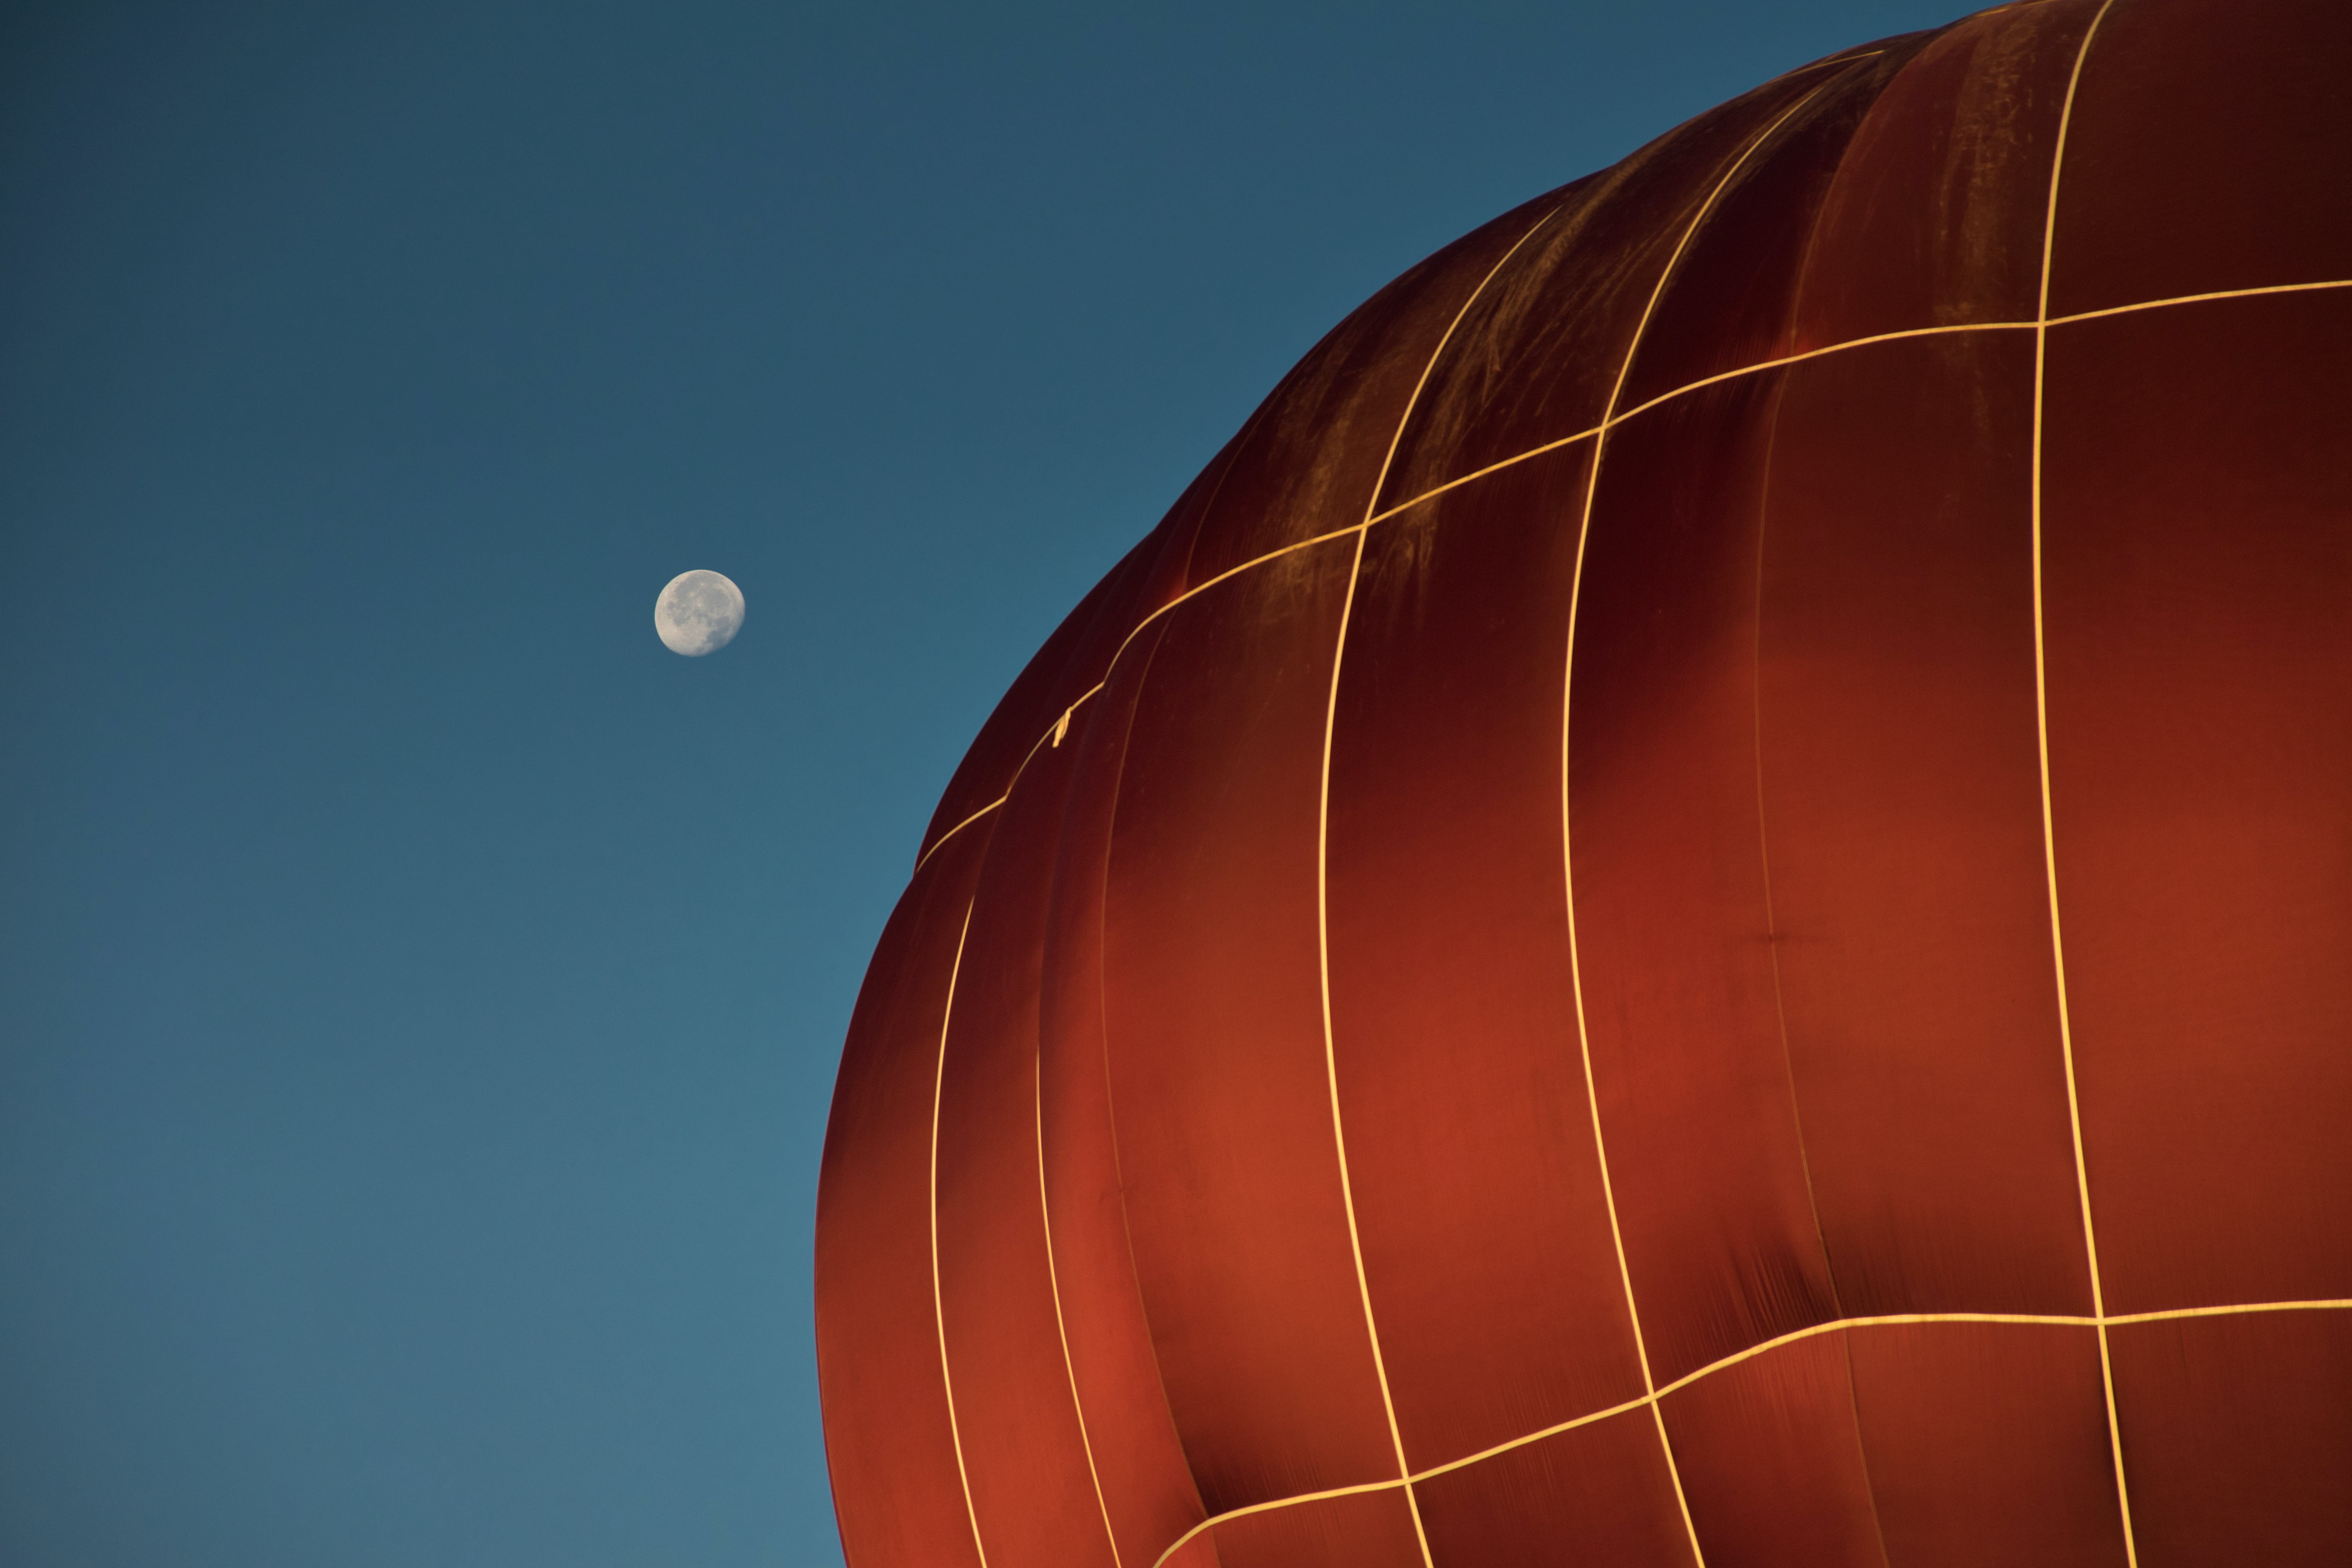 Close-up Photo of Red Hot Air Balloon